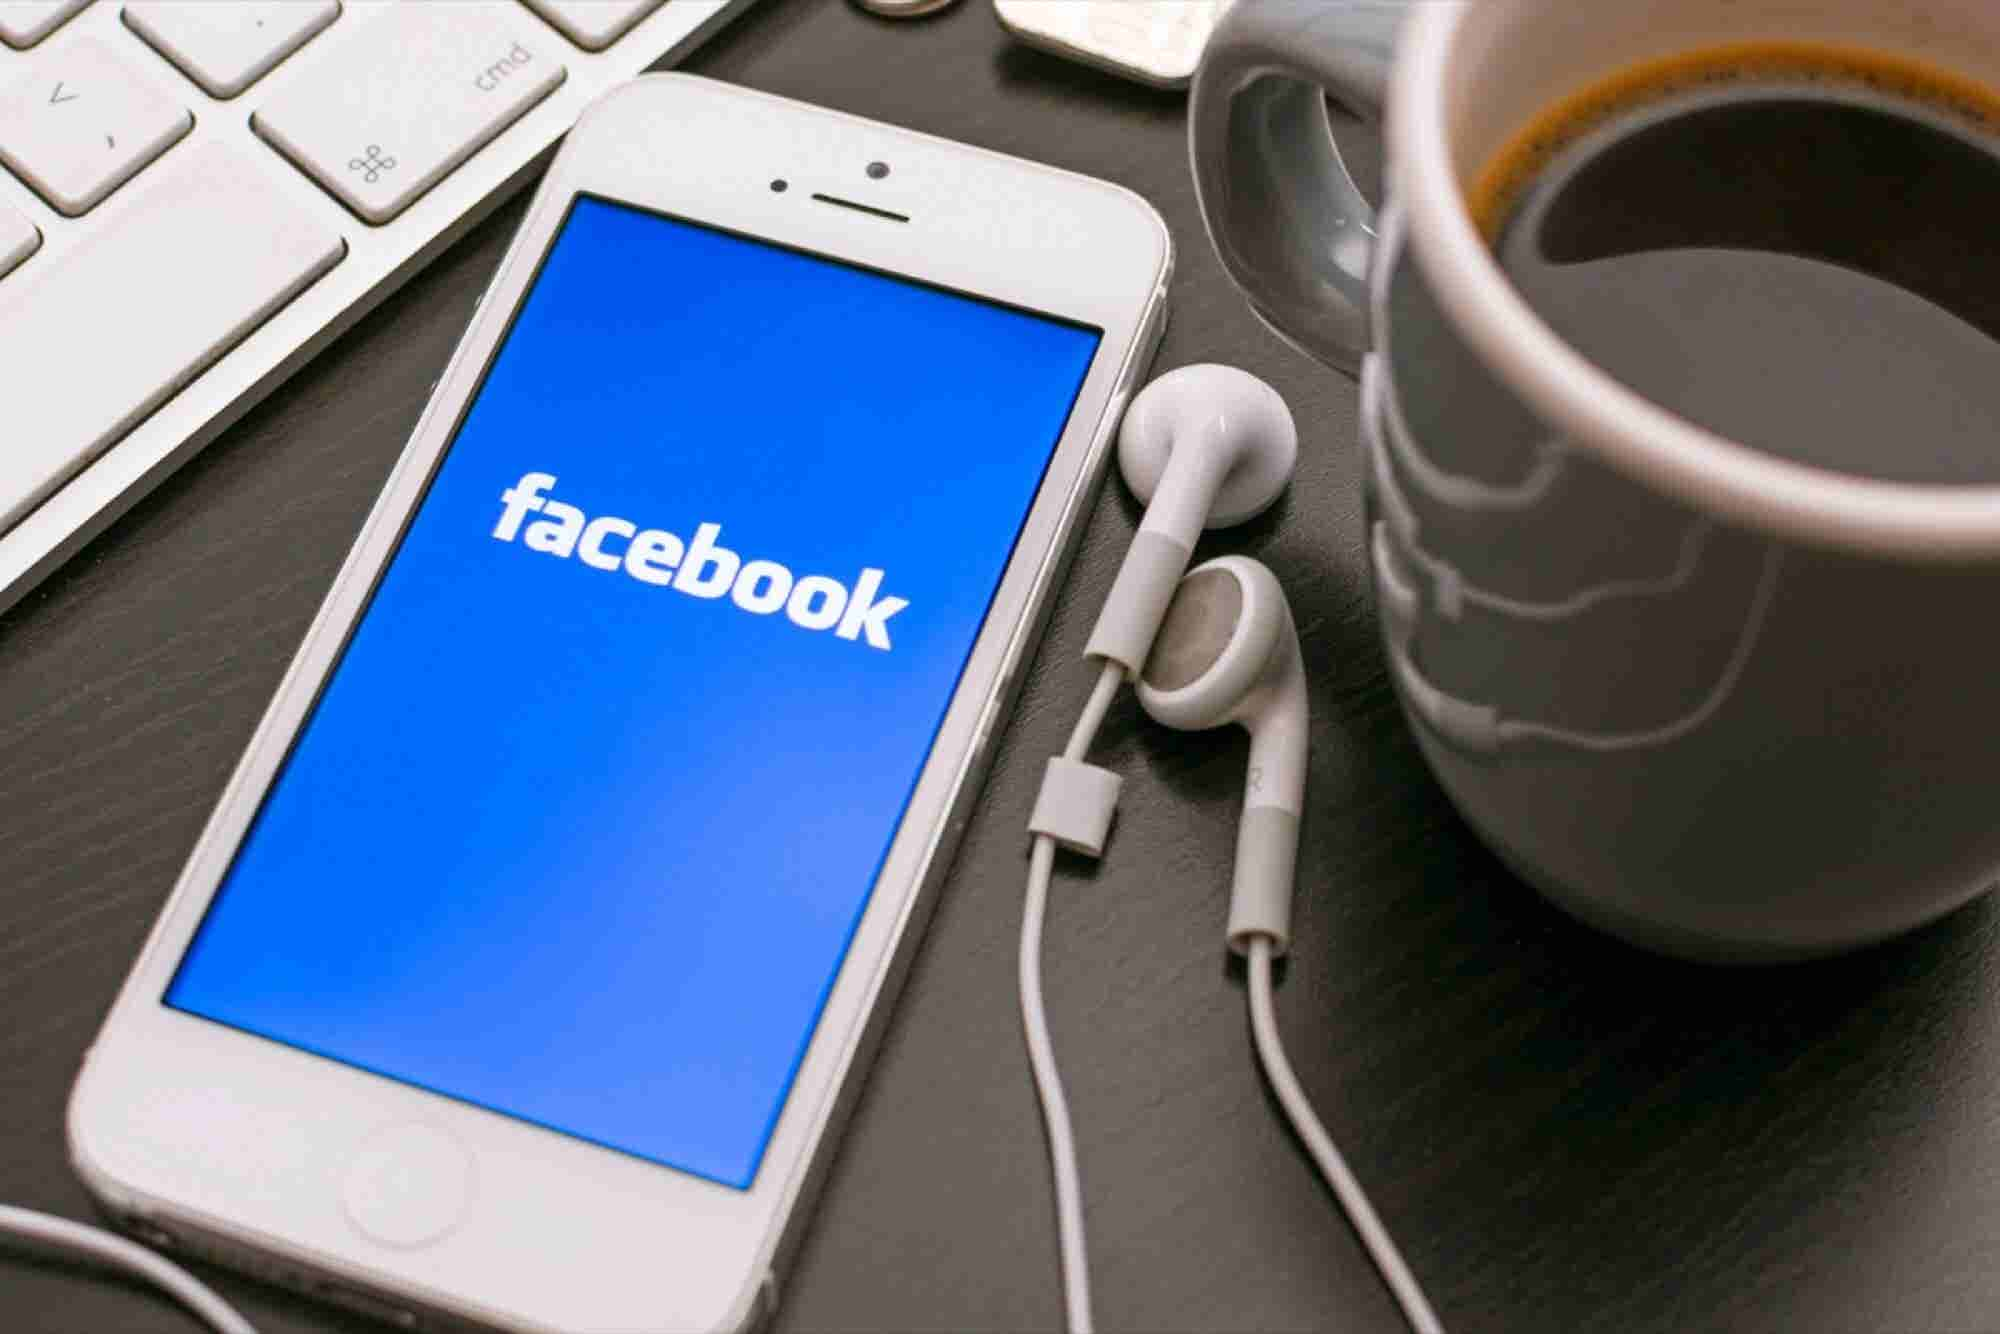 Facebook Returns To India With WiFi, But This Time It's Not Free